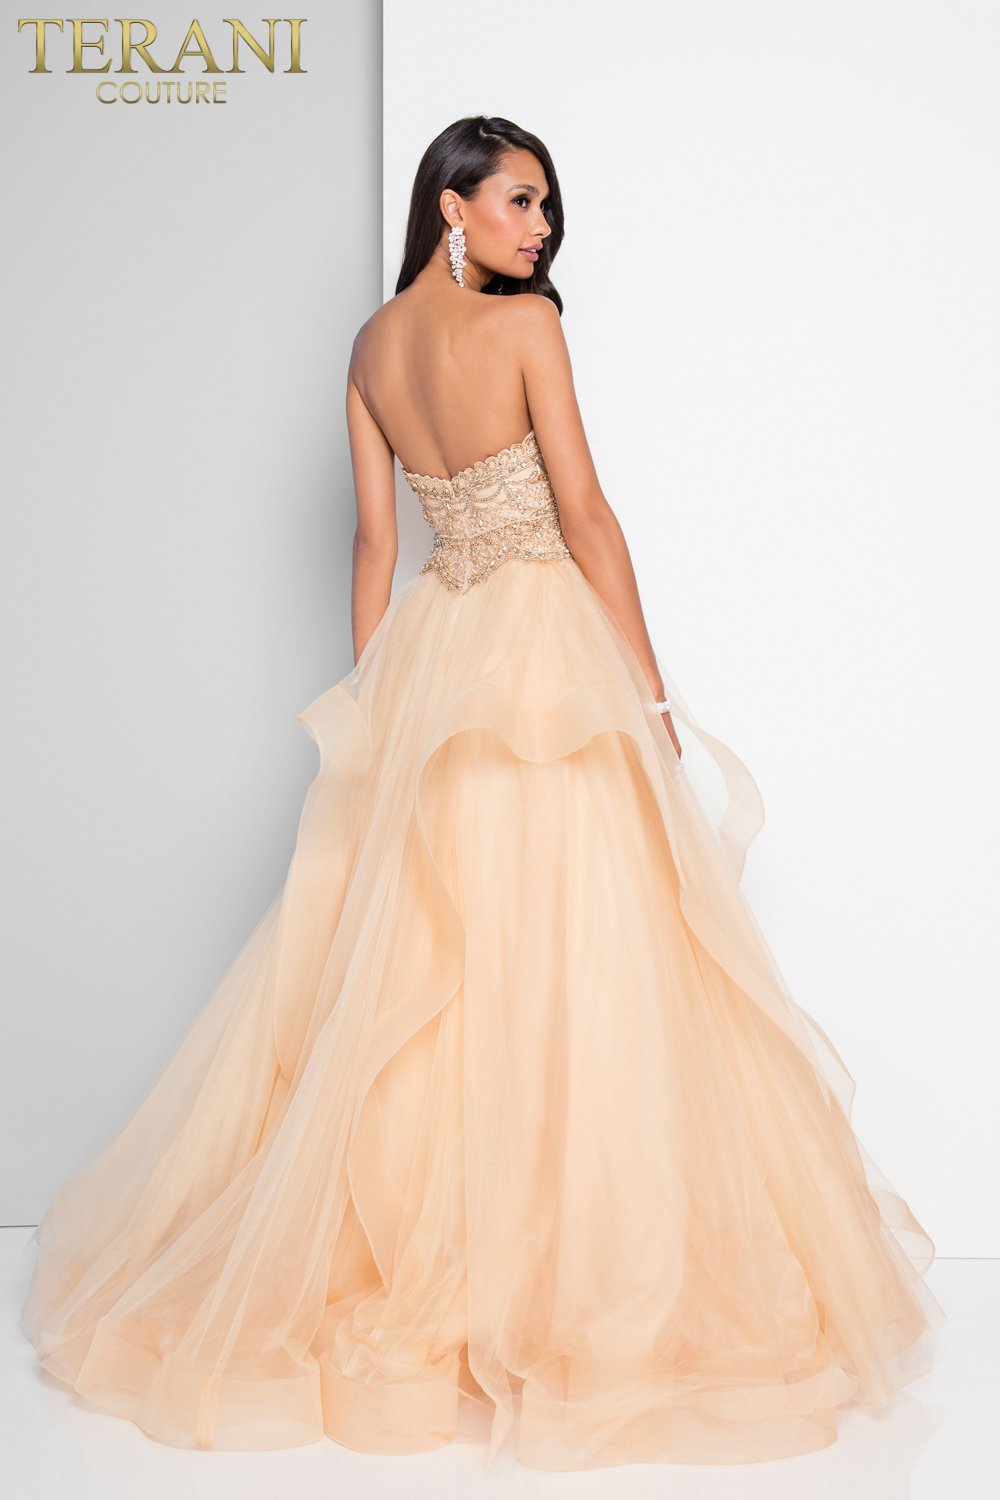 deedf1b2671 Evening Gown Next Day Delivery - Data Dynamic AG